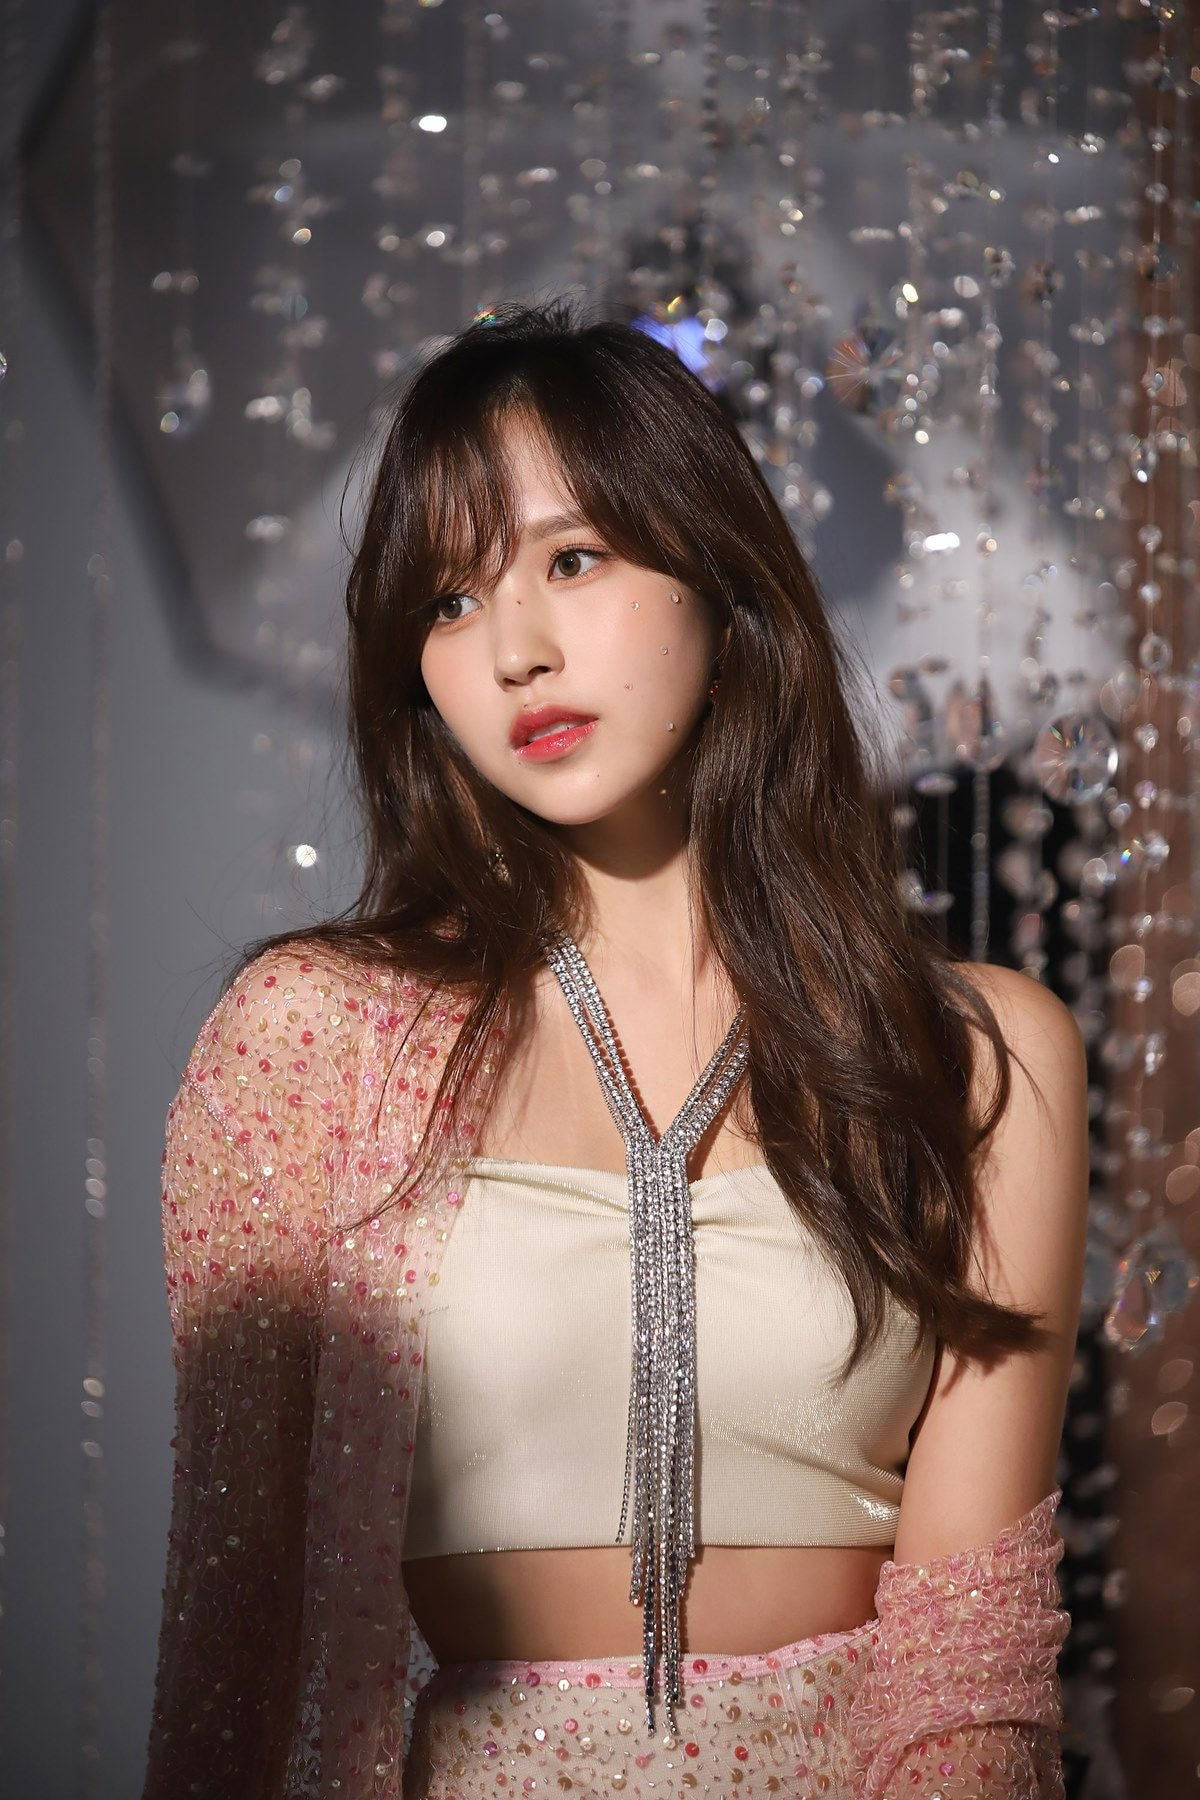 Twice S Mina In Long Hair Versus Short Hair Will Be Your Biggest Problem Of The Day Kissasian